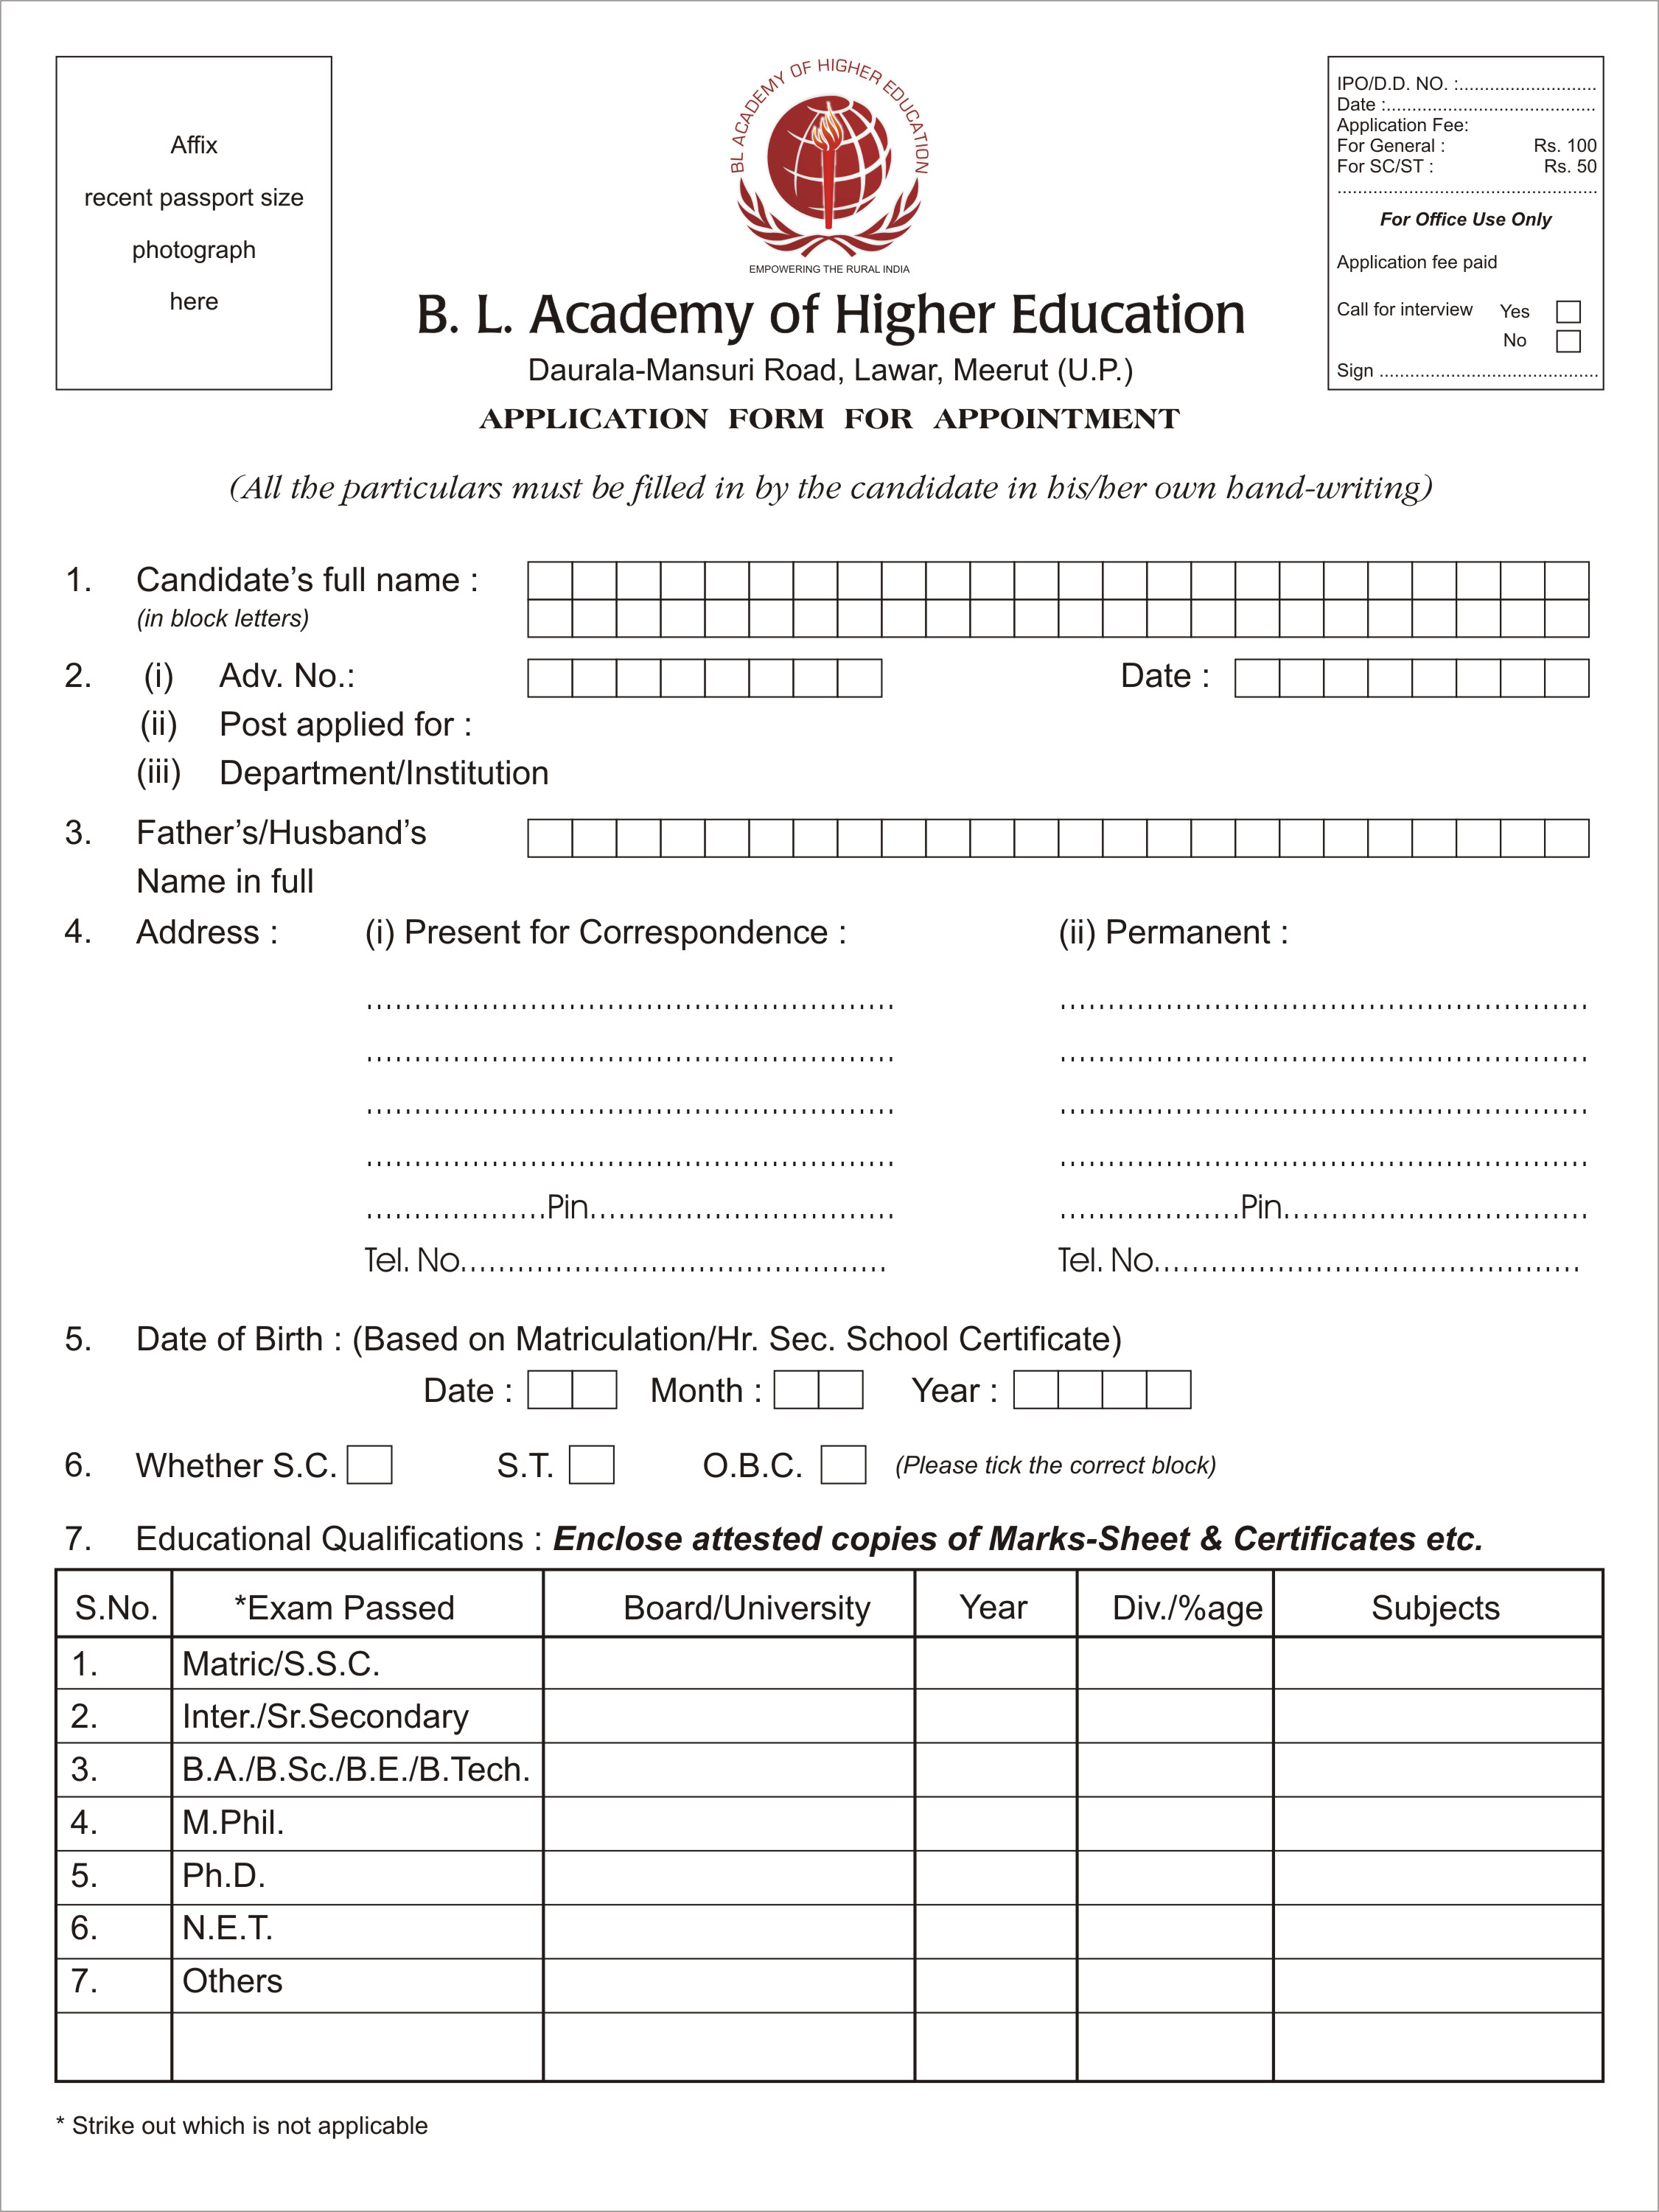 BL Academy of Higher Education, Bachelor of Business ...